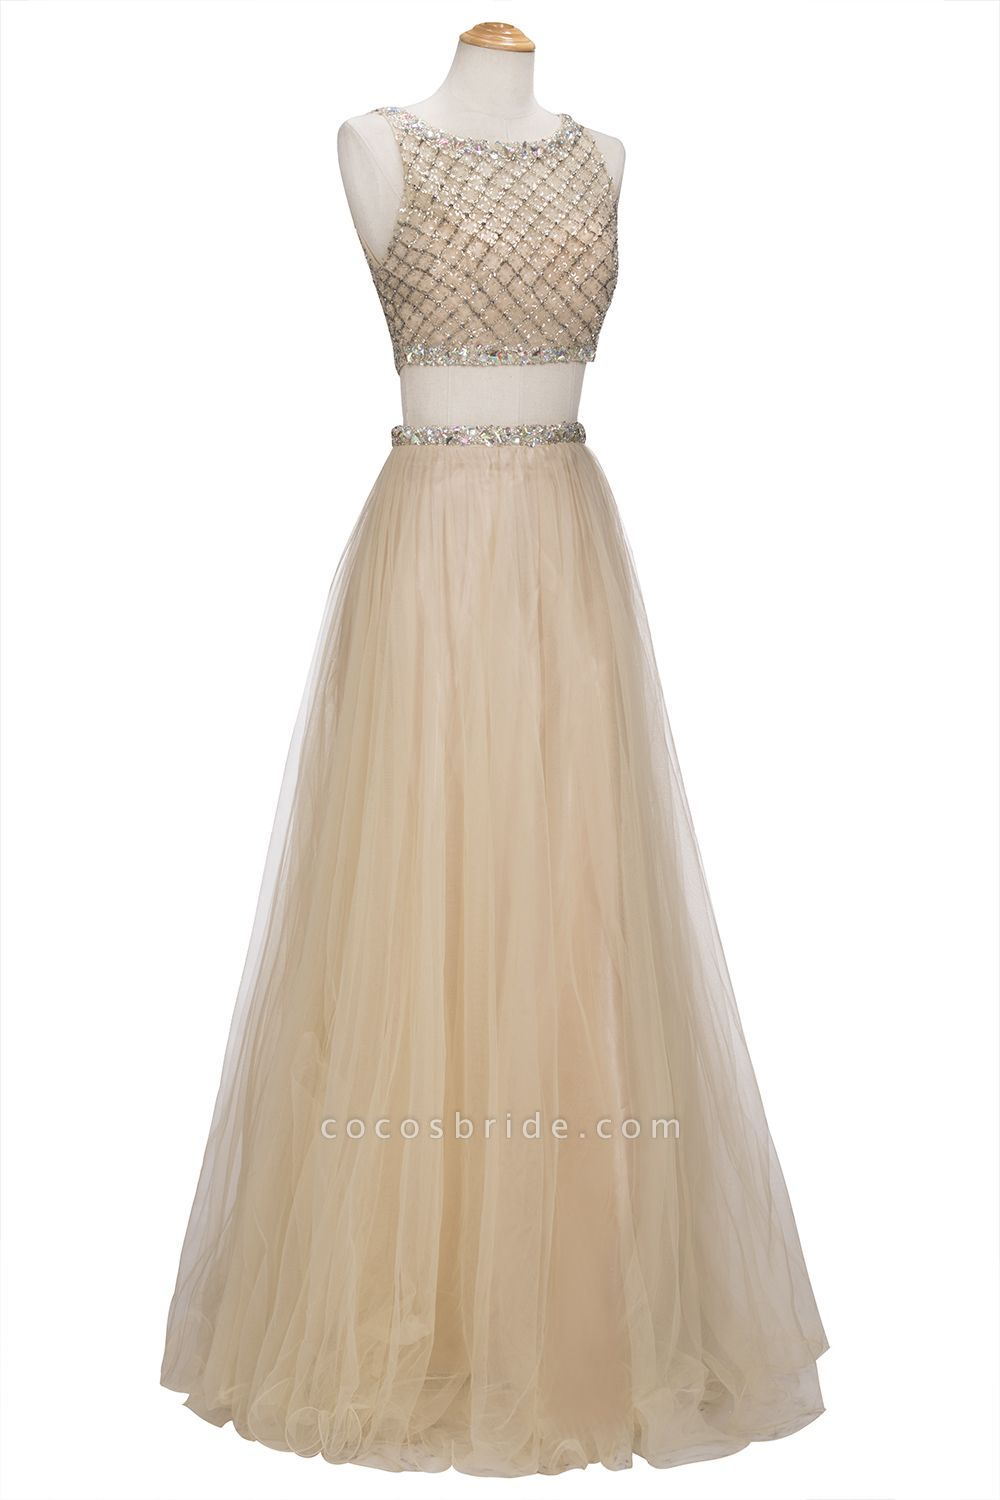 OPHELIA | A-line Two-piece Floor Length Sleeveless Tulle Prom Dresses with Crystals